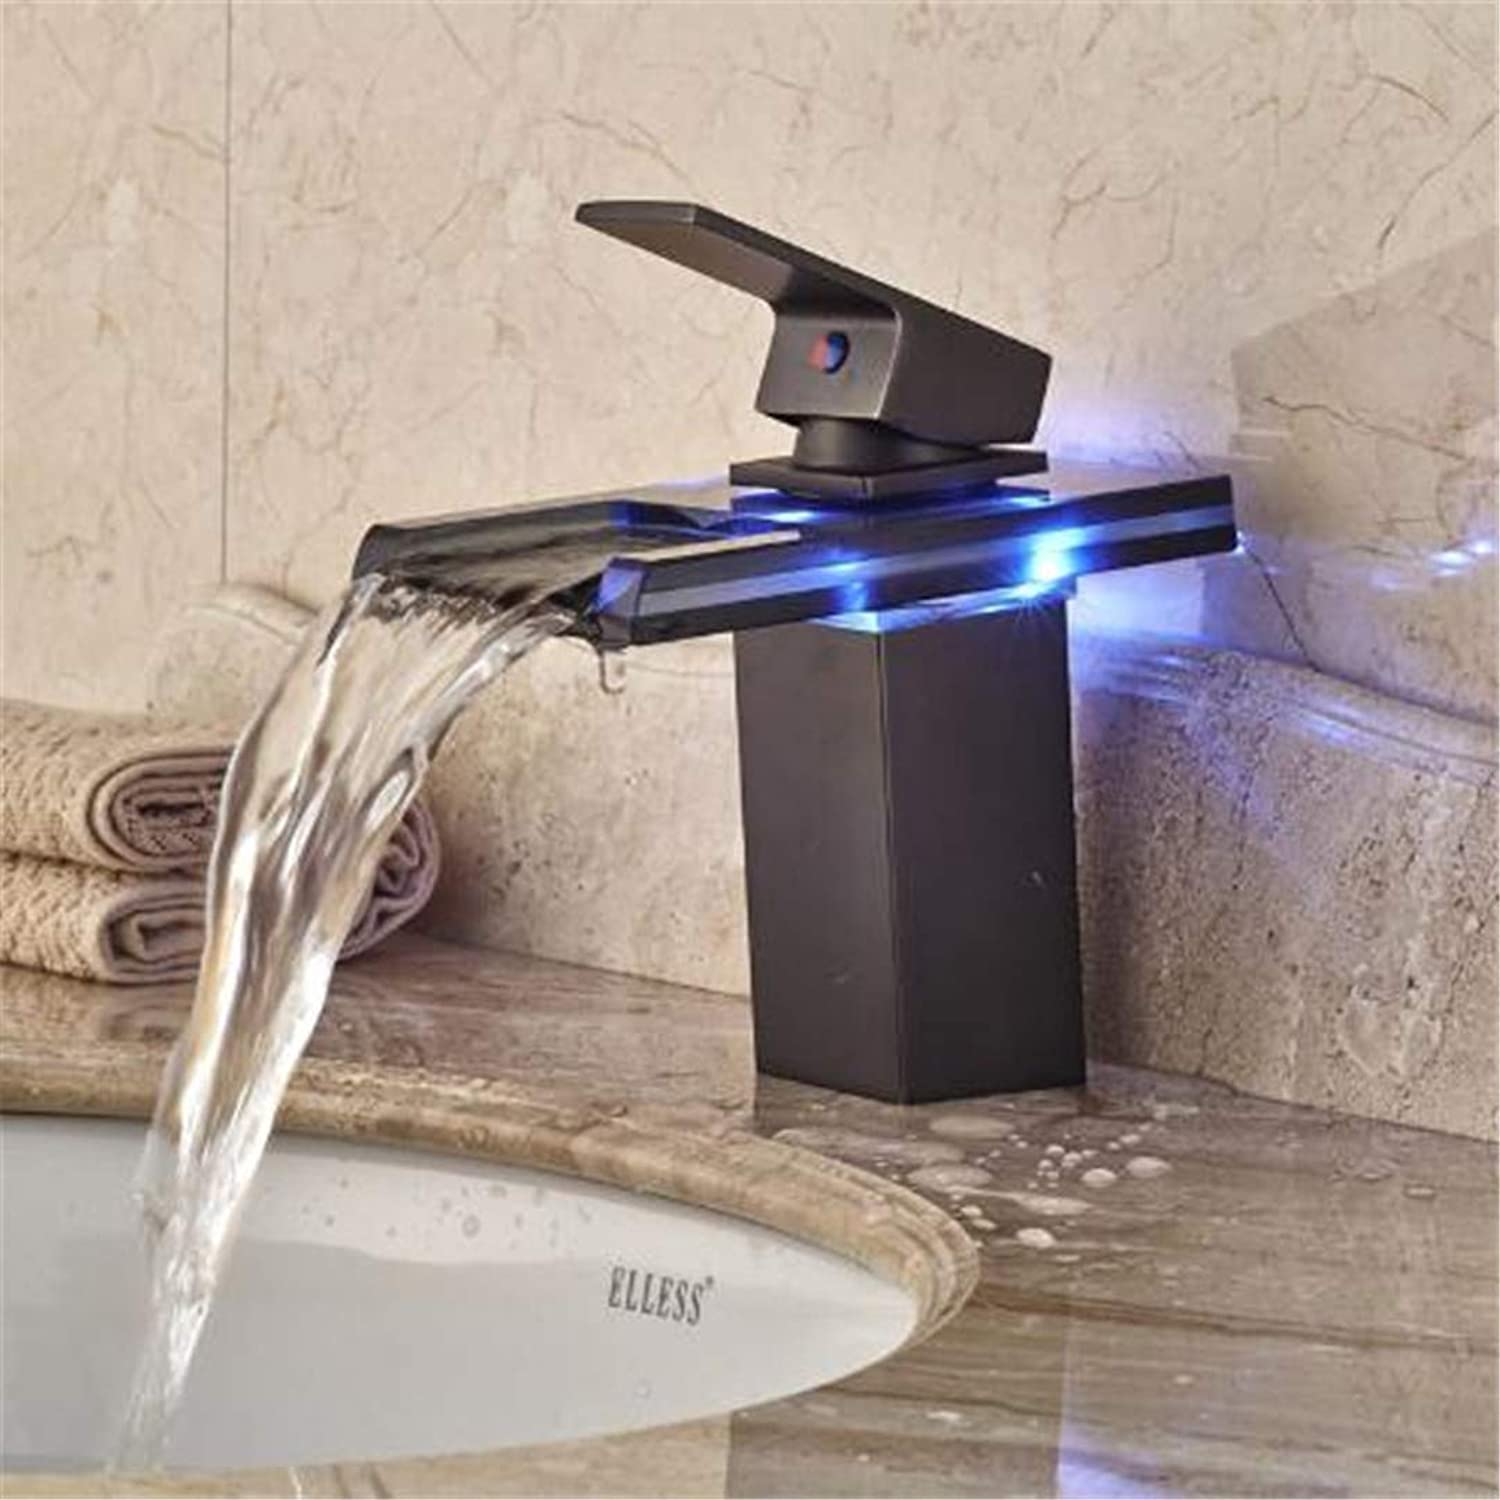 Oudan Taps Kitchen Faucet Bathroom Tapsled Light Glass Waterfall Spout Basin Sink Faucet Single Lever Changing Hot Cold Water Vanity Mixer Tap (color   -, Size   -)